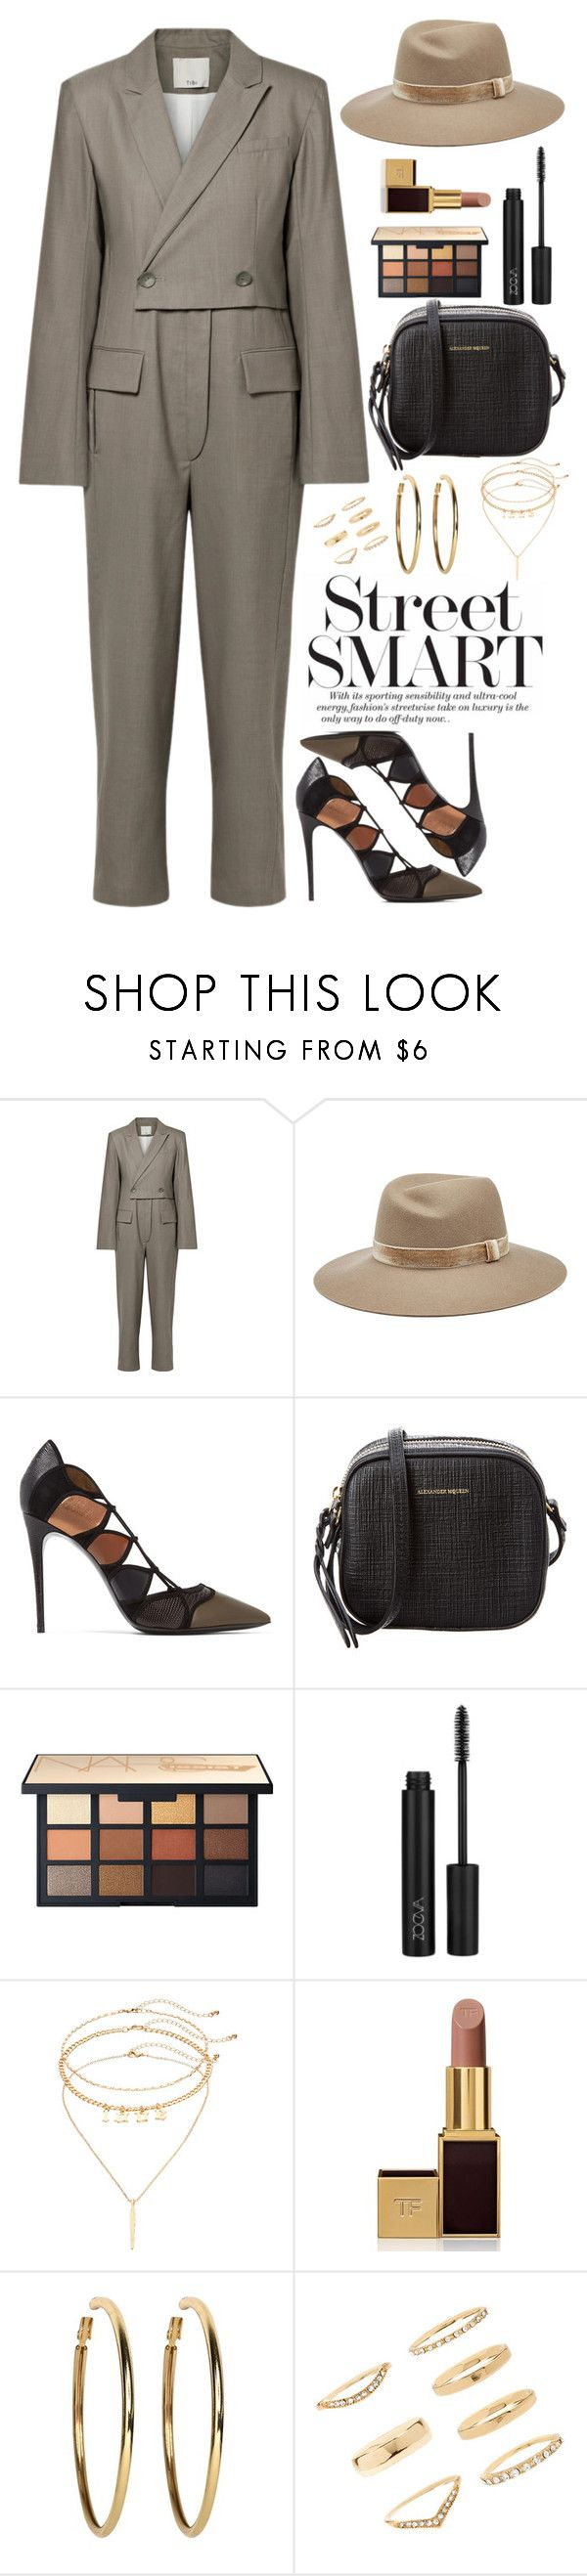 """Won't you follow me into the jungle?"" by chase-stars ❤ liked on Polyvore featuring TIBI, rag & bone, Salvatore Ferragamo, Alexander McQueen, ZOEVA, Mudd, Tom Ford, Kenneth Jay Lane and Forever 21"